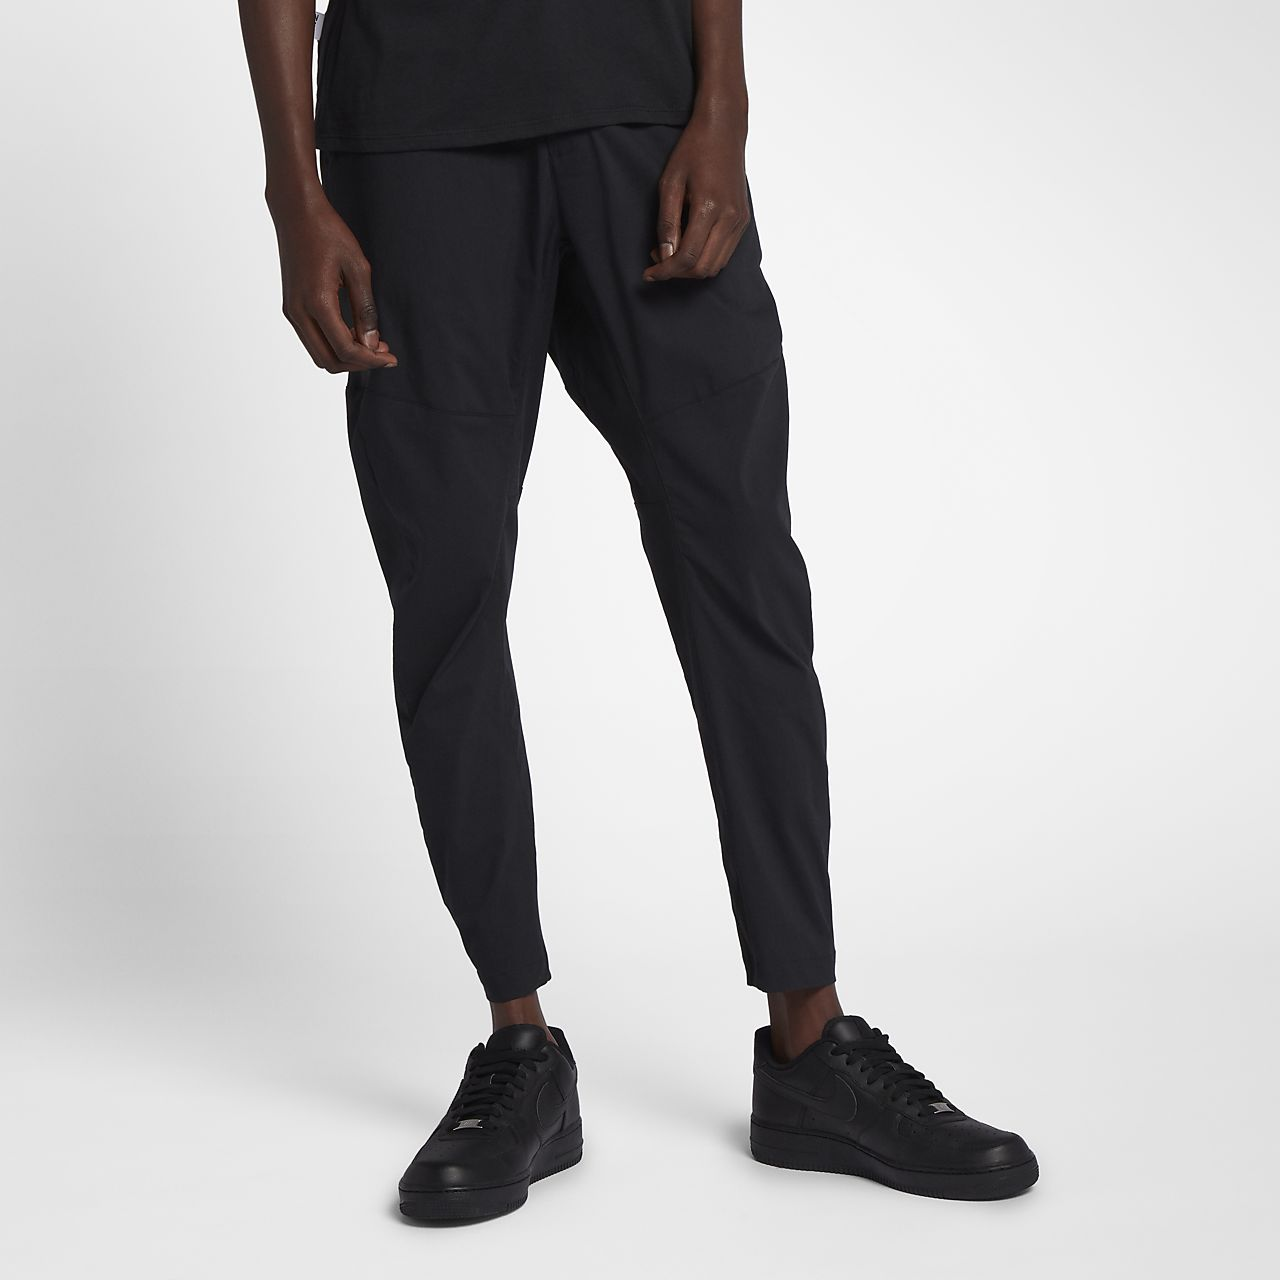 00875c844 Nike Sportswear Tech Pack Men's Pants